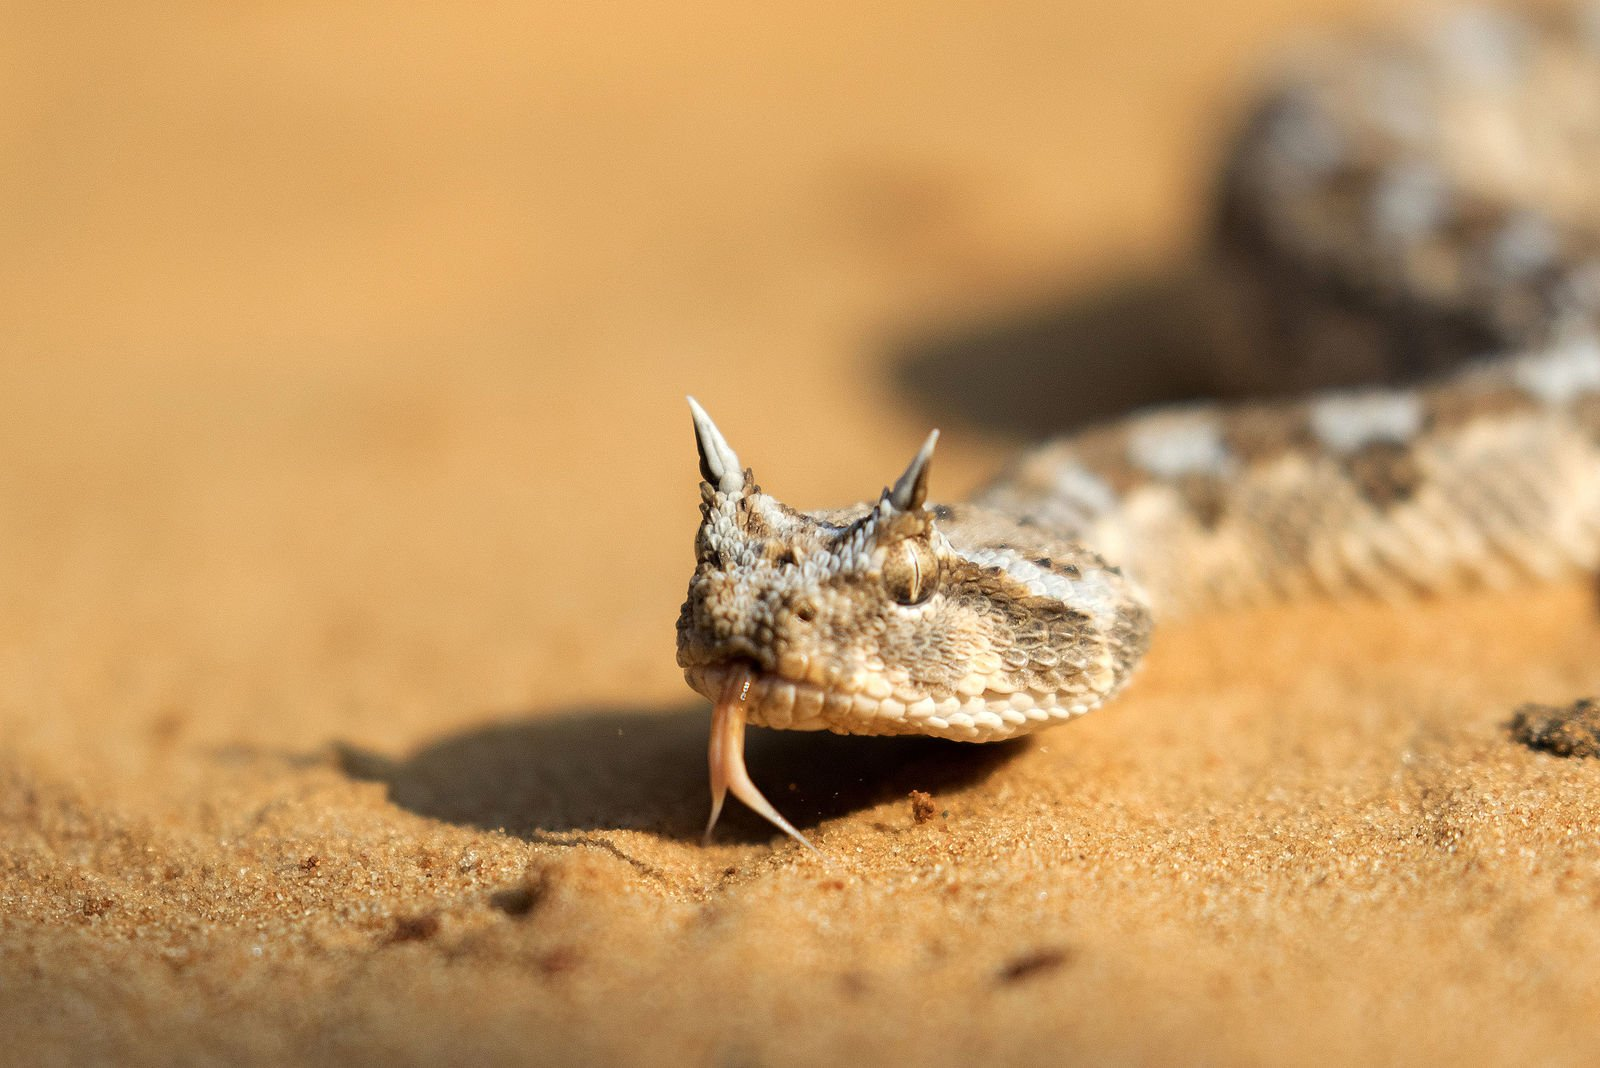 Saharan Horned Viper (Cerastes cerastes). Photo: Oronbb, Commons Wikimedia